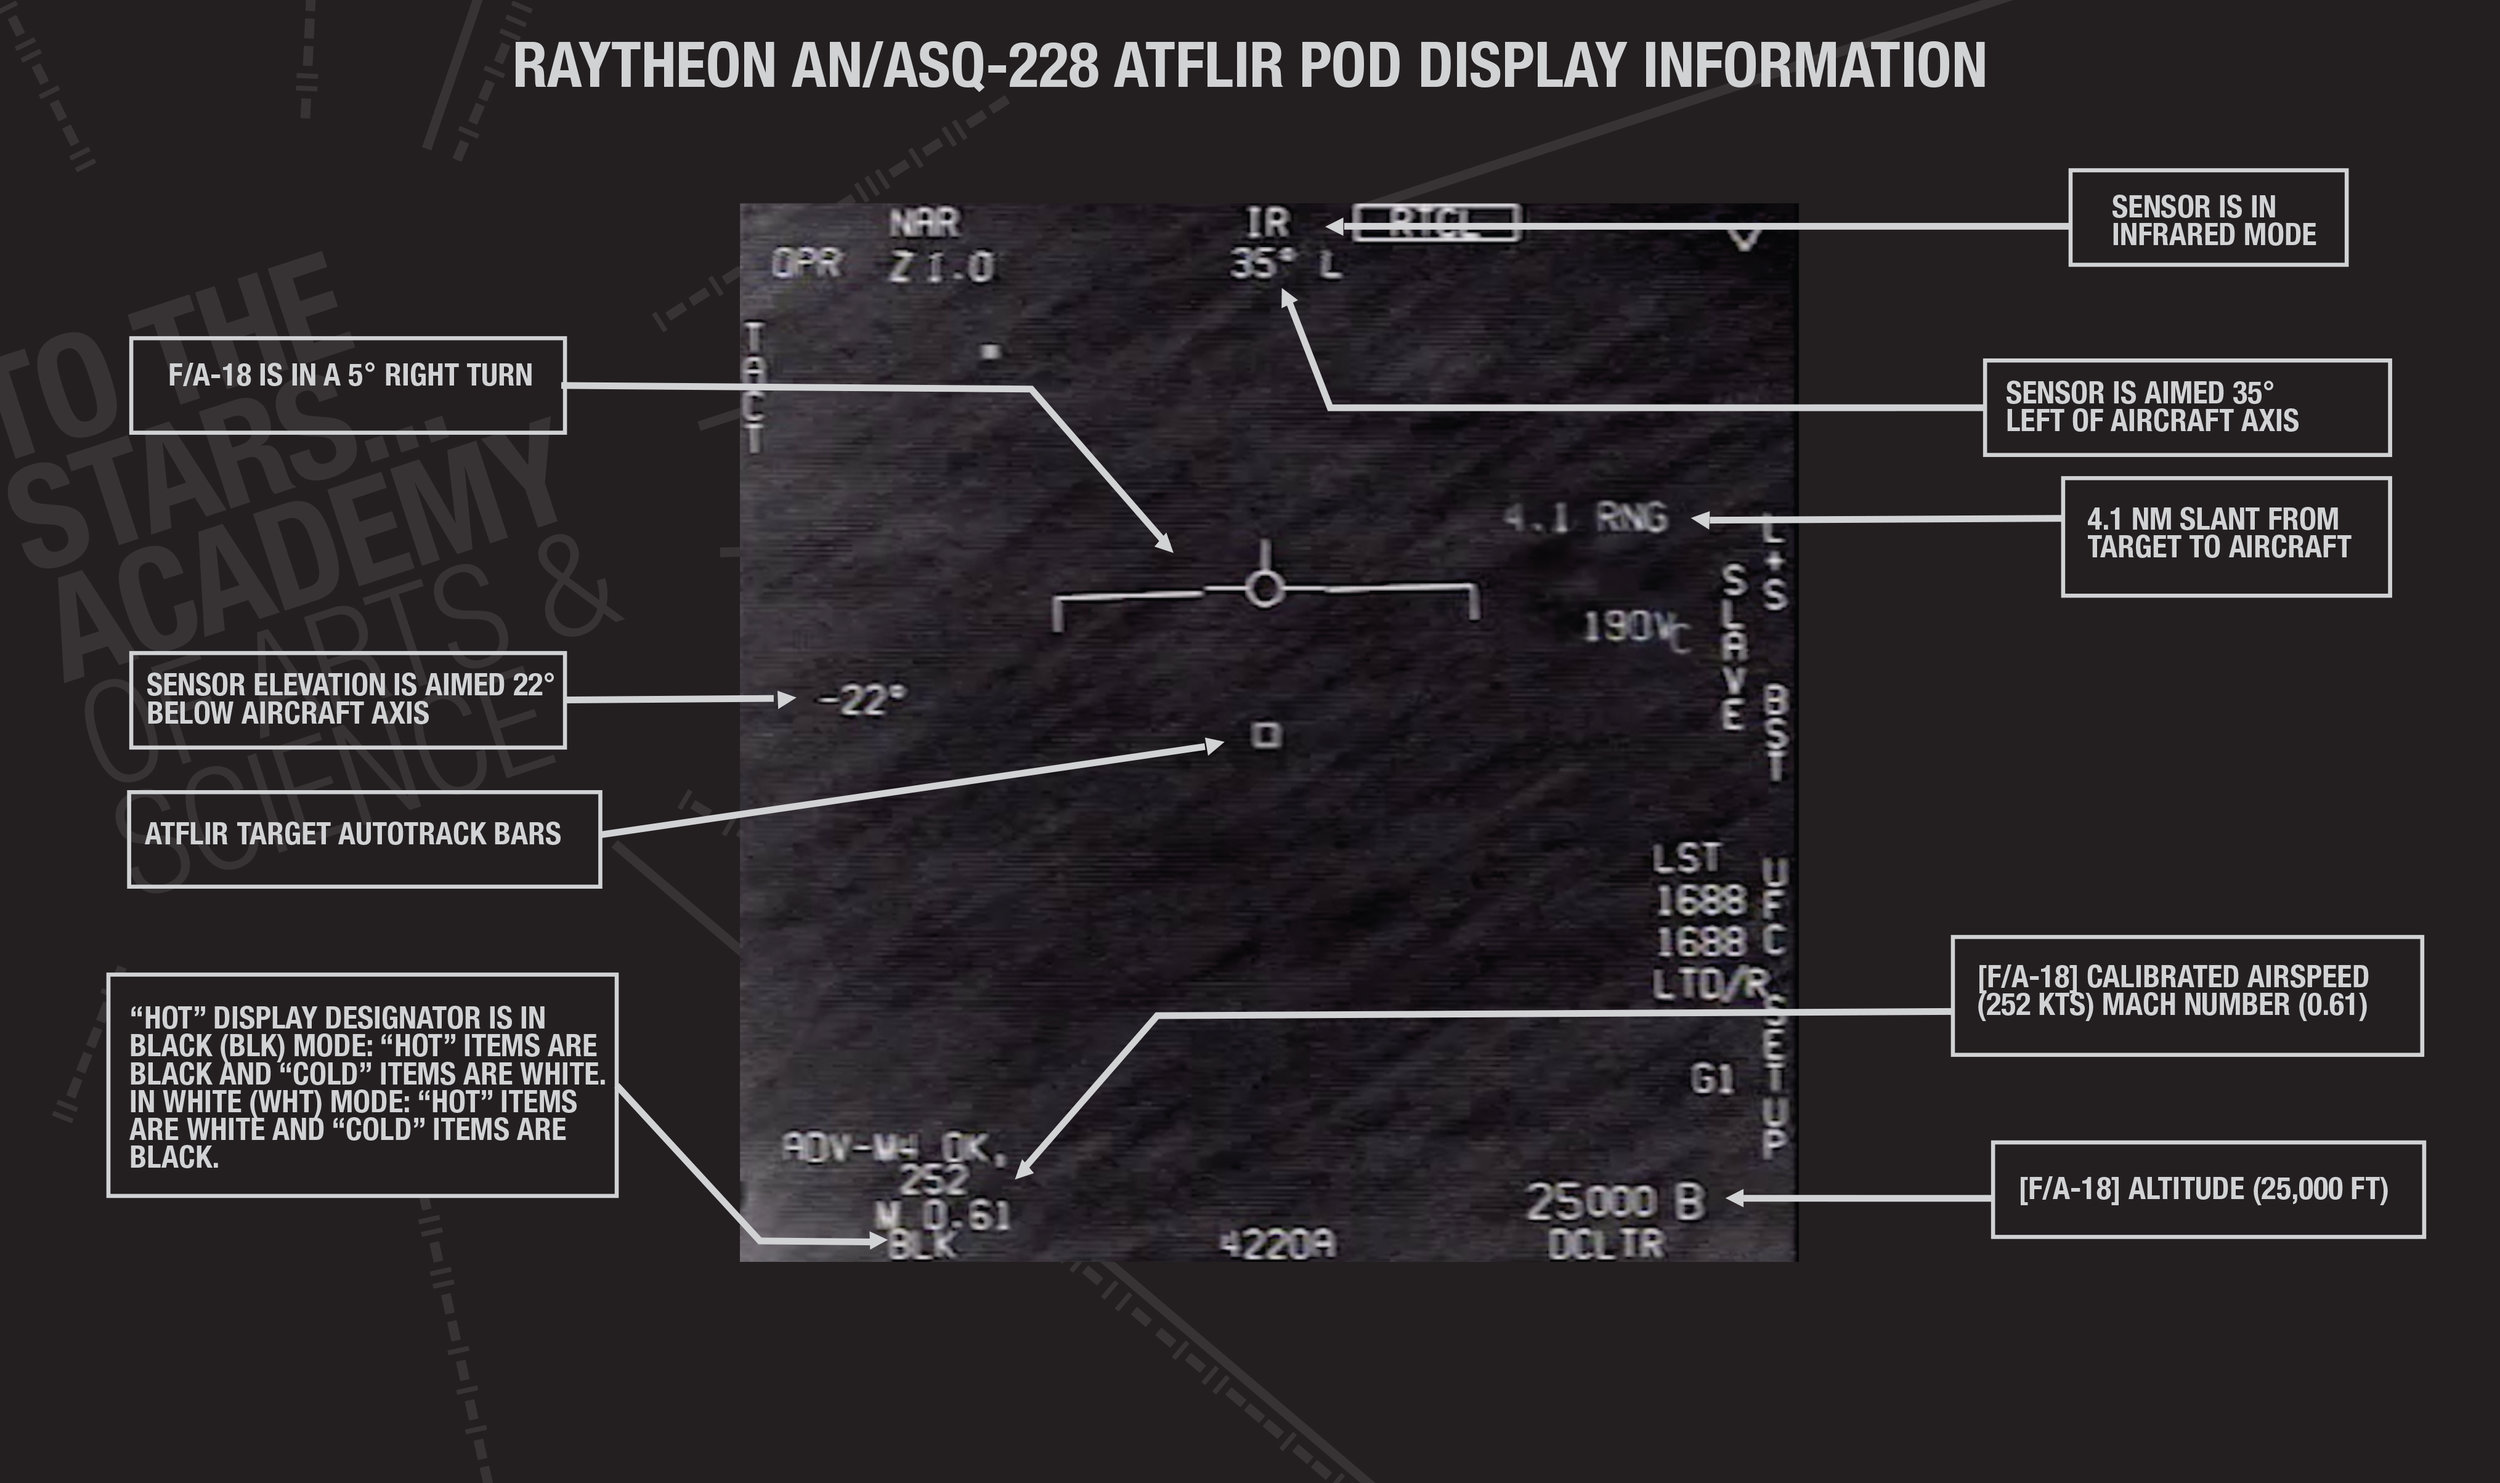 Figure 1 - The ATFLIR display reveals significant information regarding flight conditions and characteristics of the imagery